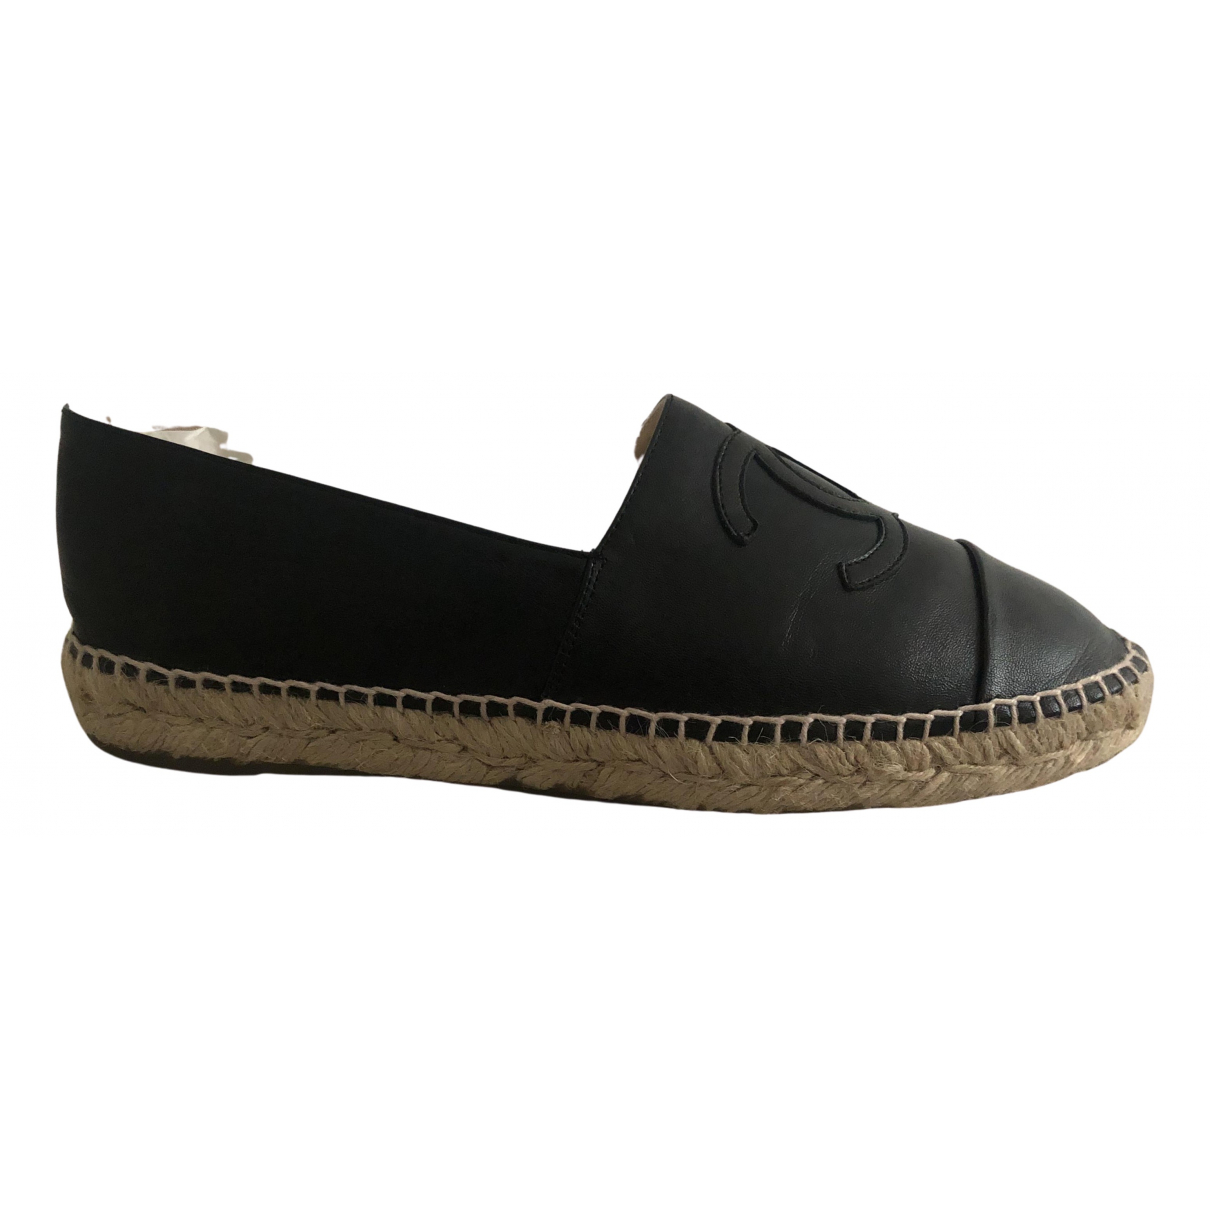 Chanel \N Black Leather Espadrilles for Women 40 EU